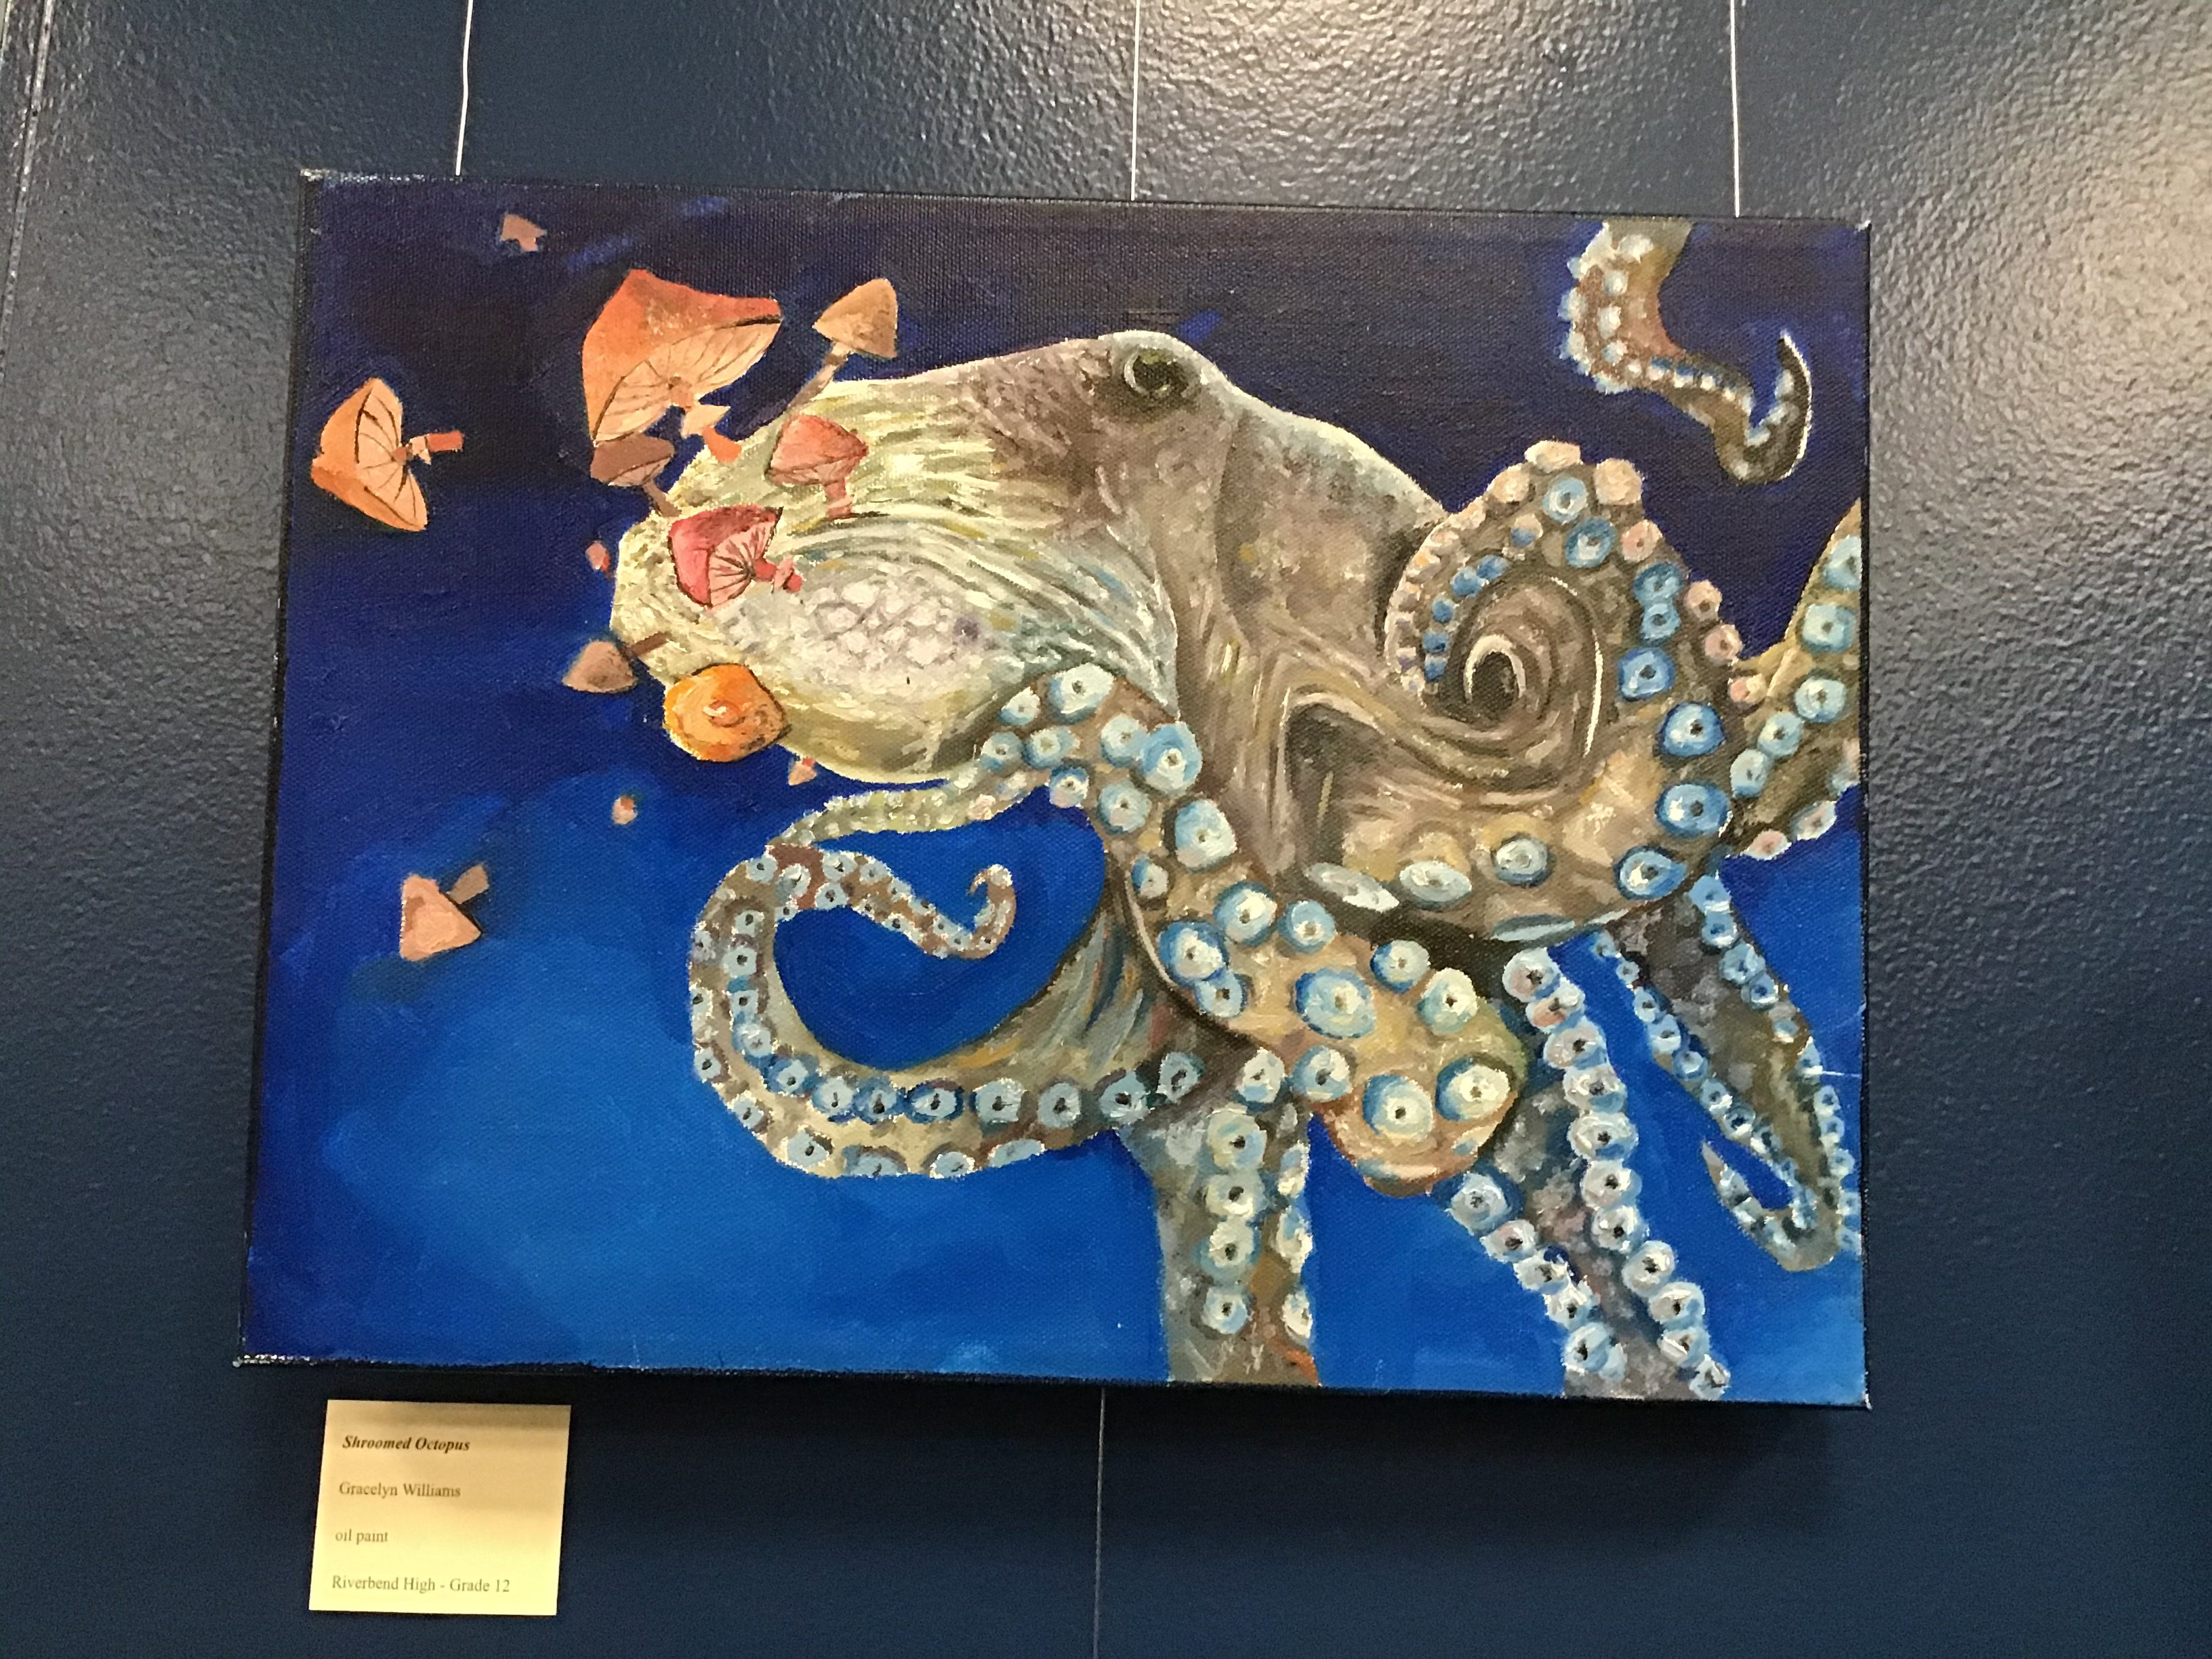 Gracelyn Williams - Grade 12 - Riverbend High - Shroomed Octopus